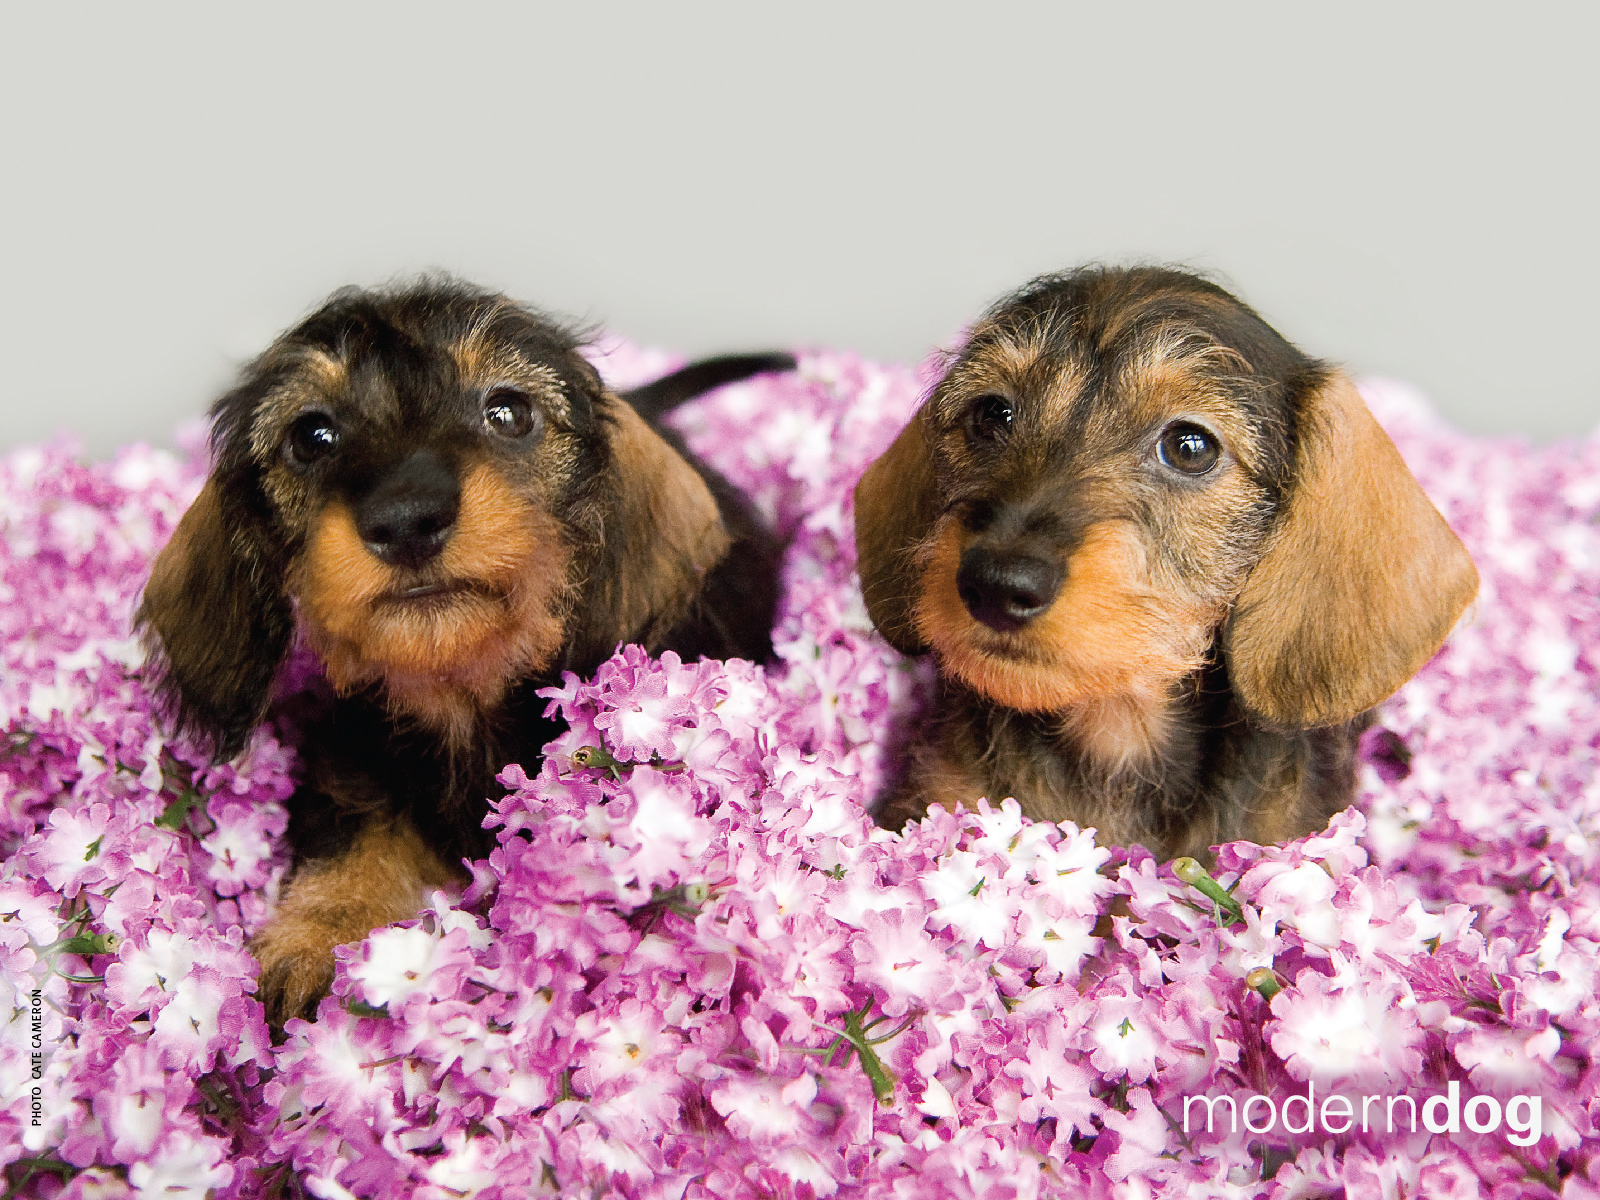 Puppies Free Modern Dog Wallpaper Modern Dog Magazine